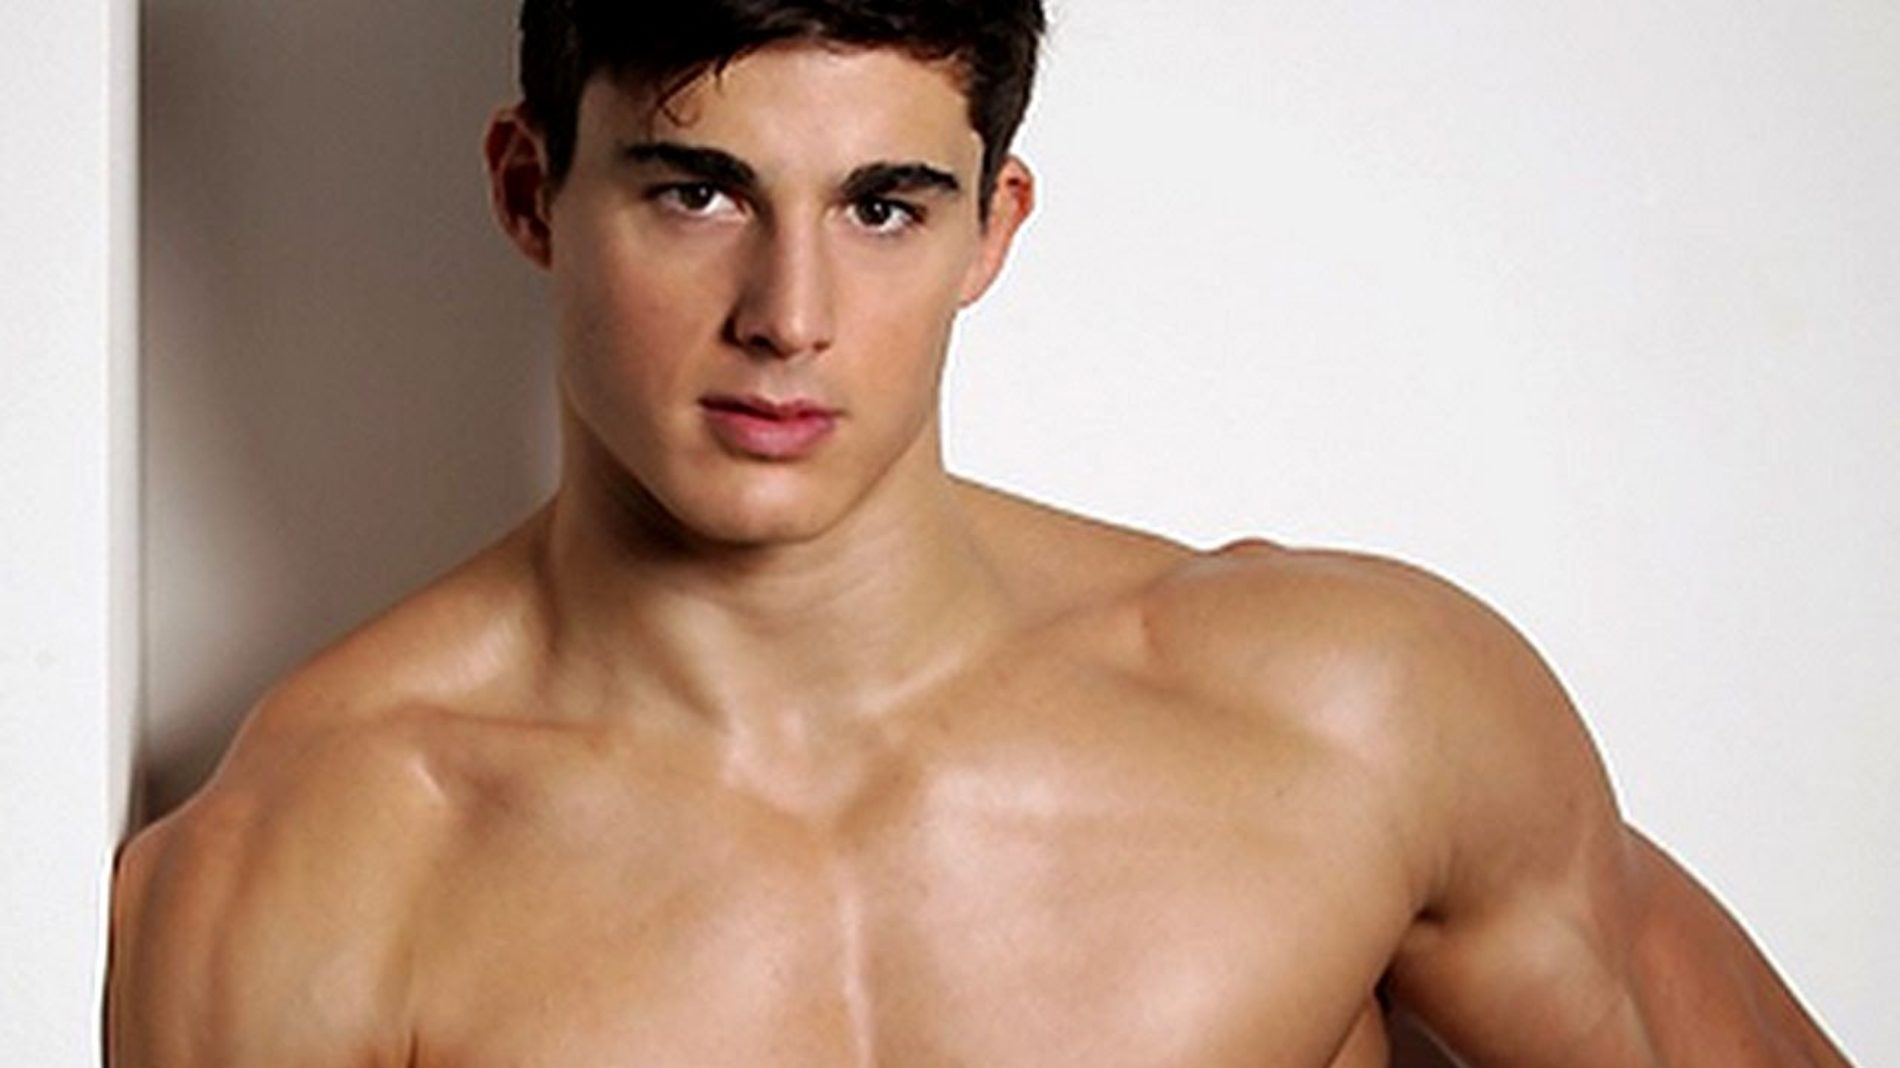 Pietro Boselli talks about the downside of being too handsome